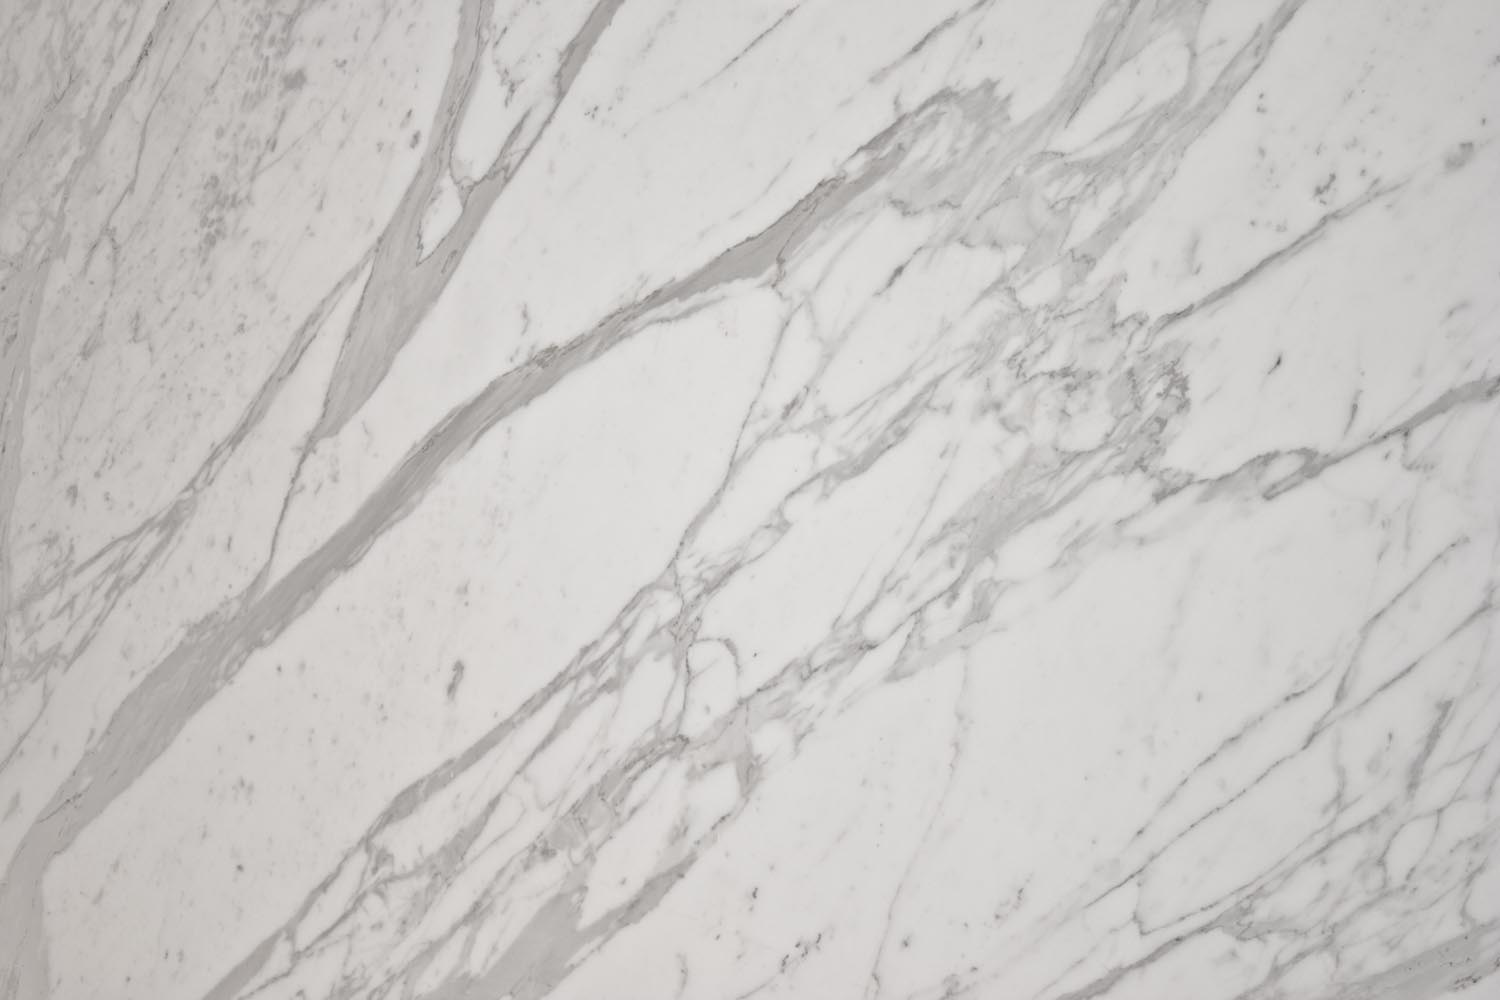 Marble is a metamorphic stone formed from limestone under heat and pressure over many years in the Earth's crust.